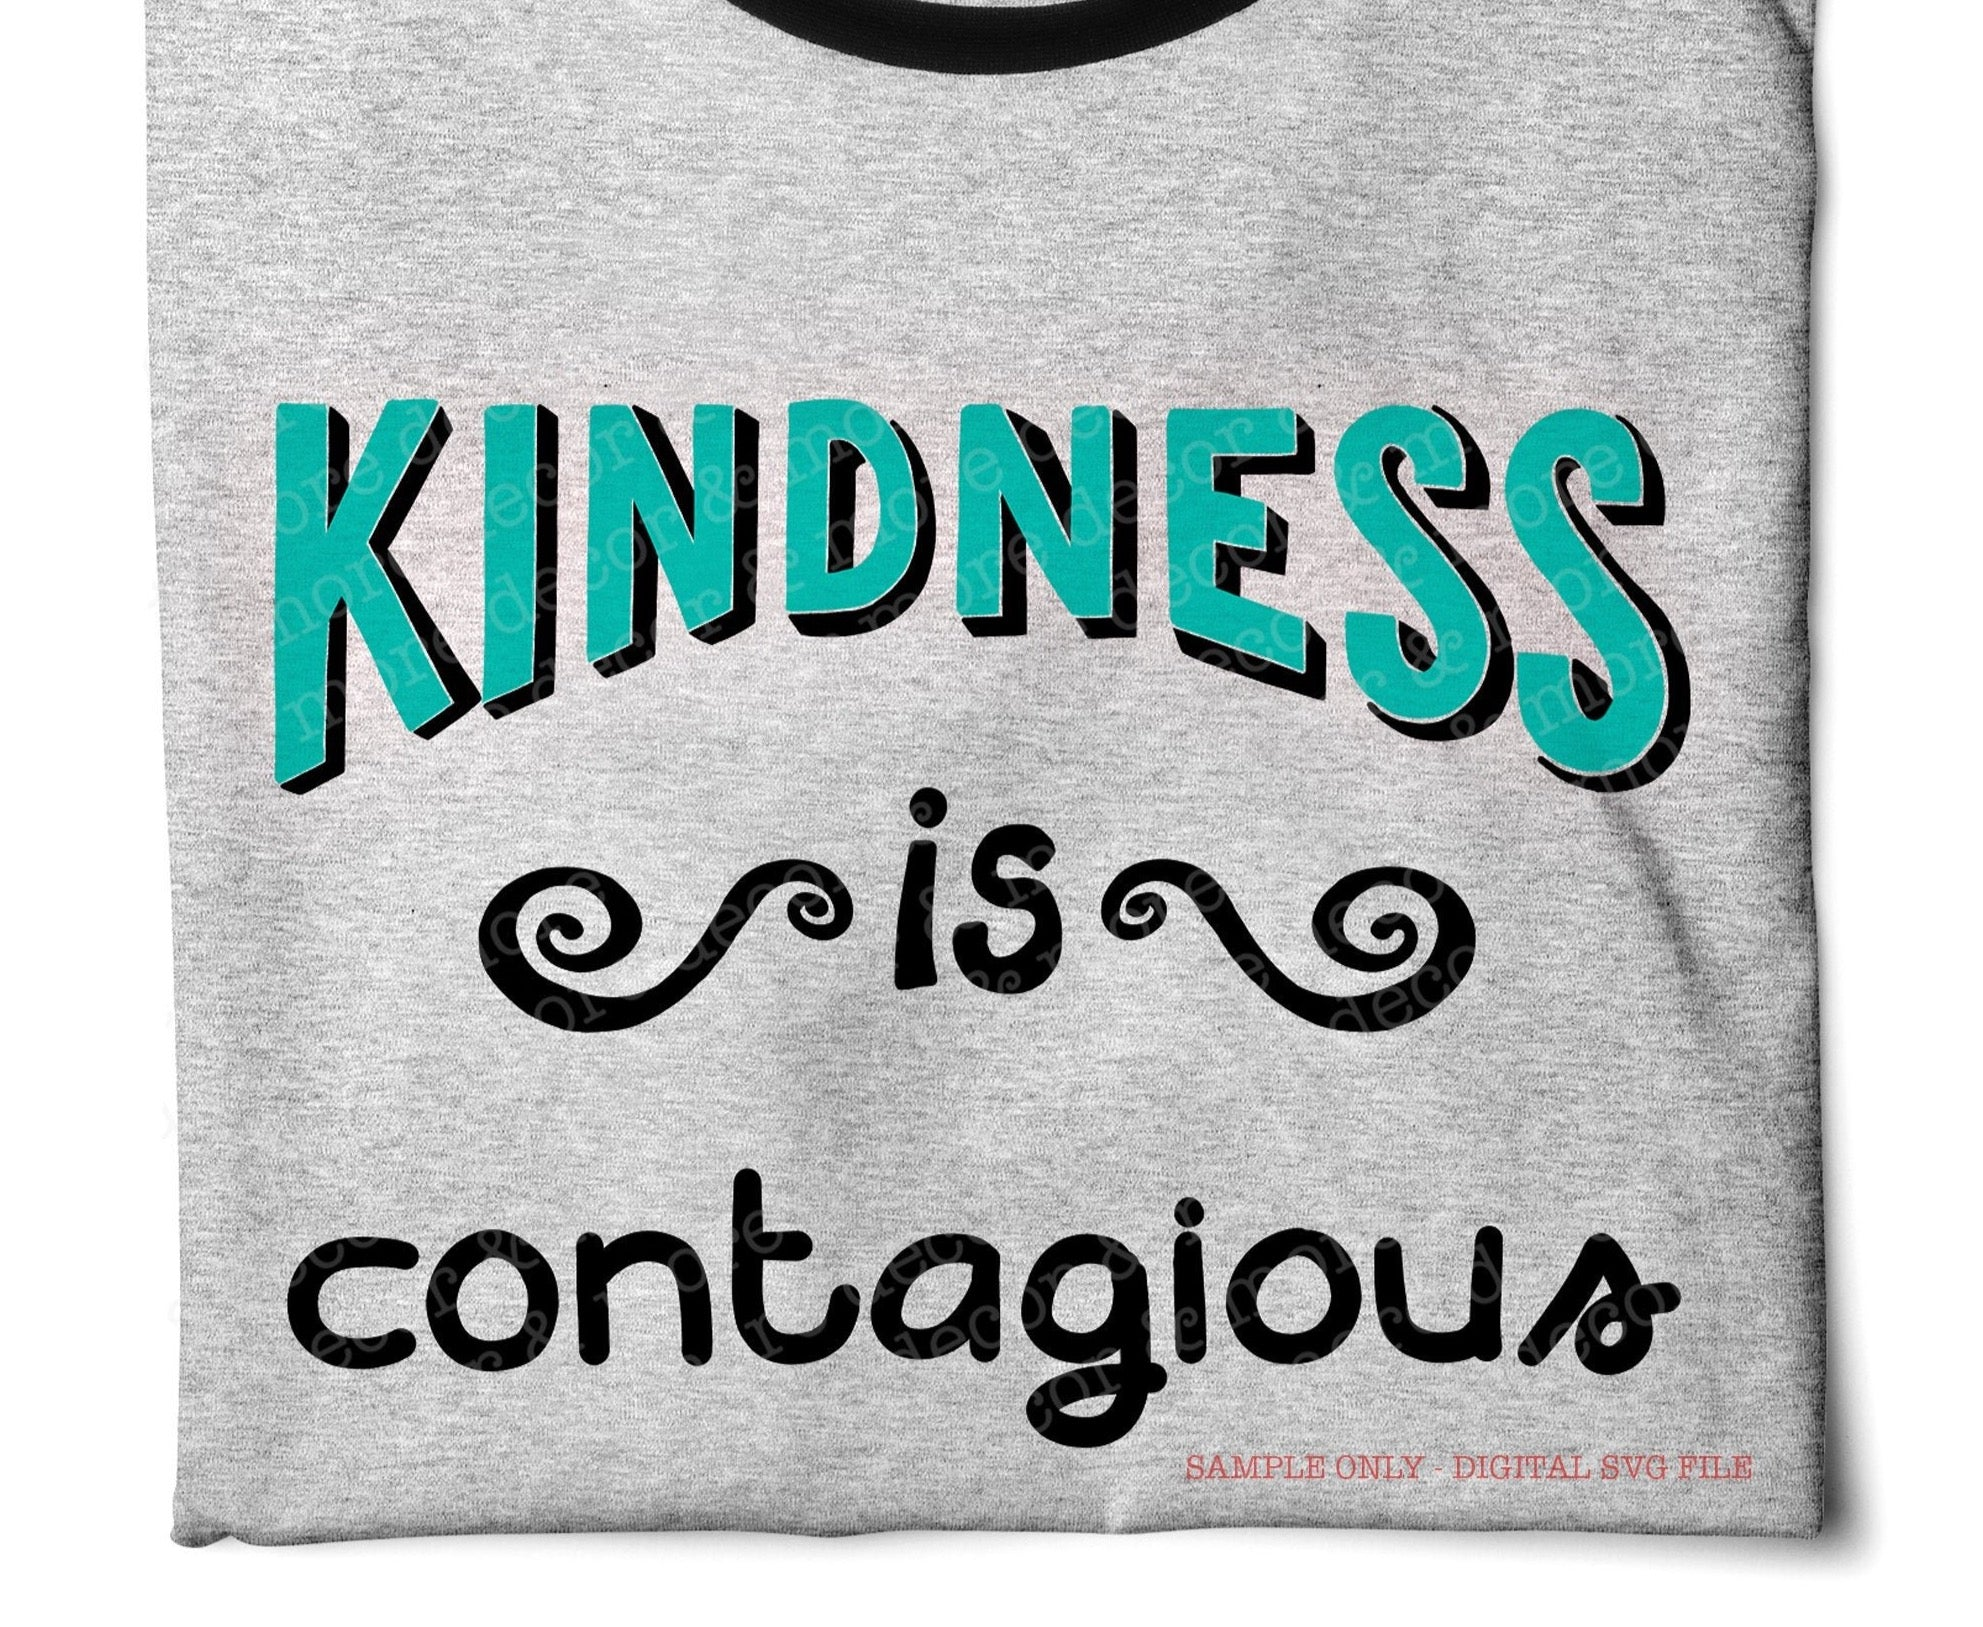 Kindness is Contagious SVG File, Be Kind Shirt Saying SVG, Be Kind SVG Files for Cricut, Inspirational Back to School Svg, Teacher Shirt Svg